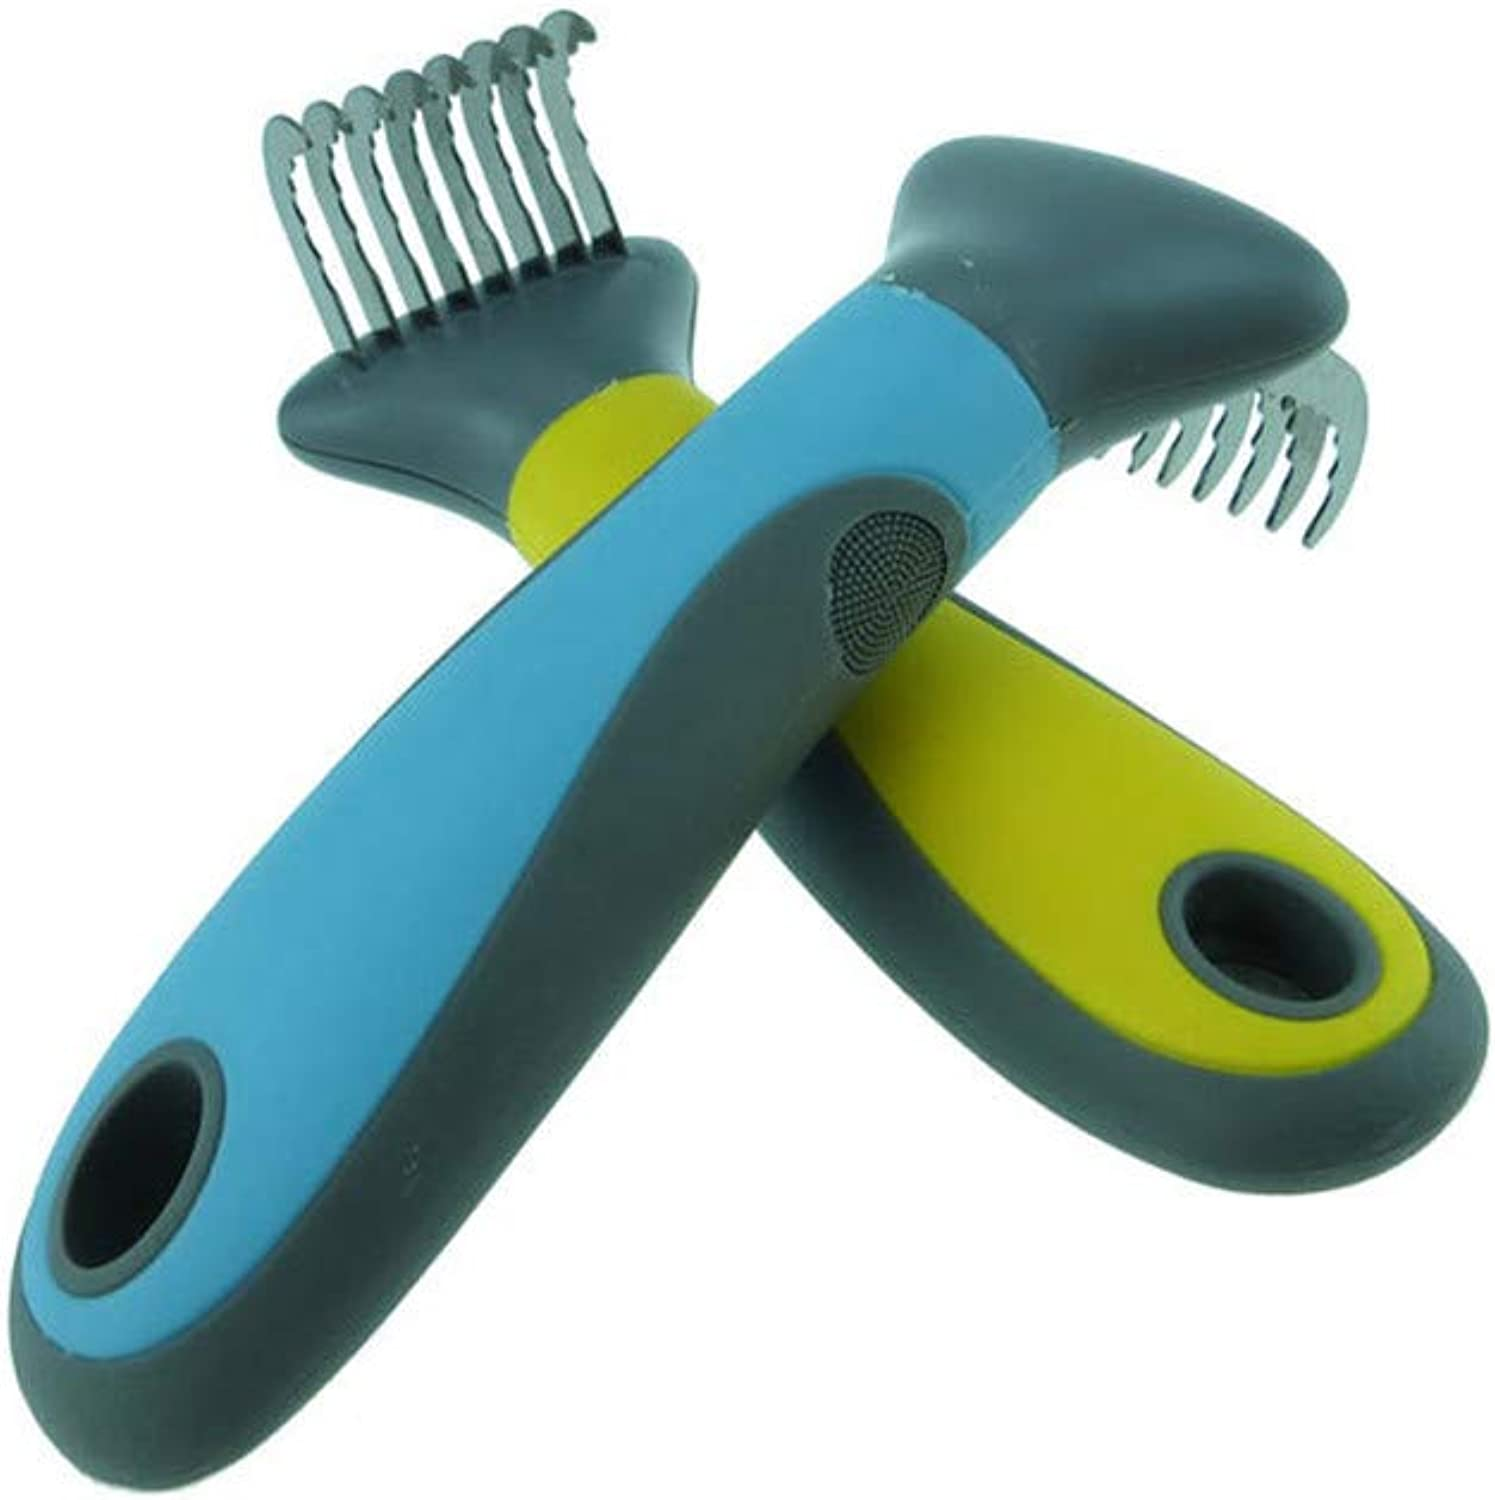 Pet Hair Removal Comb 2 Pieces Dog Hair Opening Knot Knife Stainless Steel Comb Tooth NonSlip Rubber Handle Wave Shape Teeth Easy to Use Dog Knot